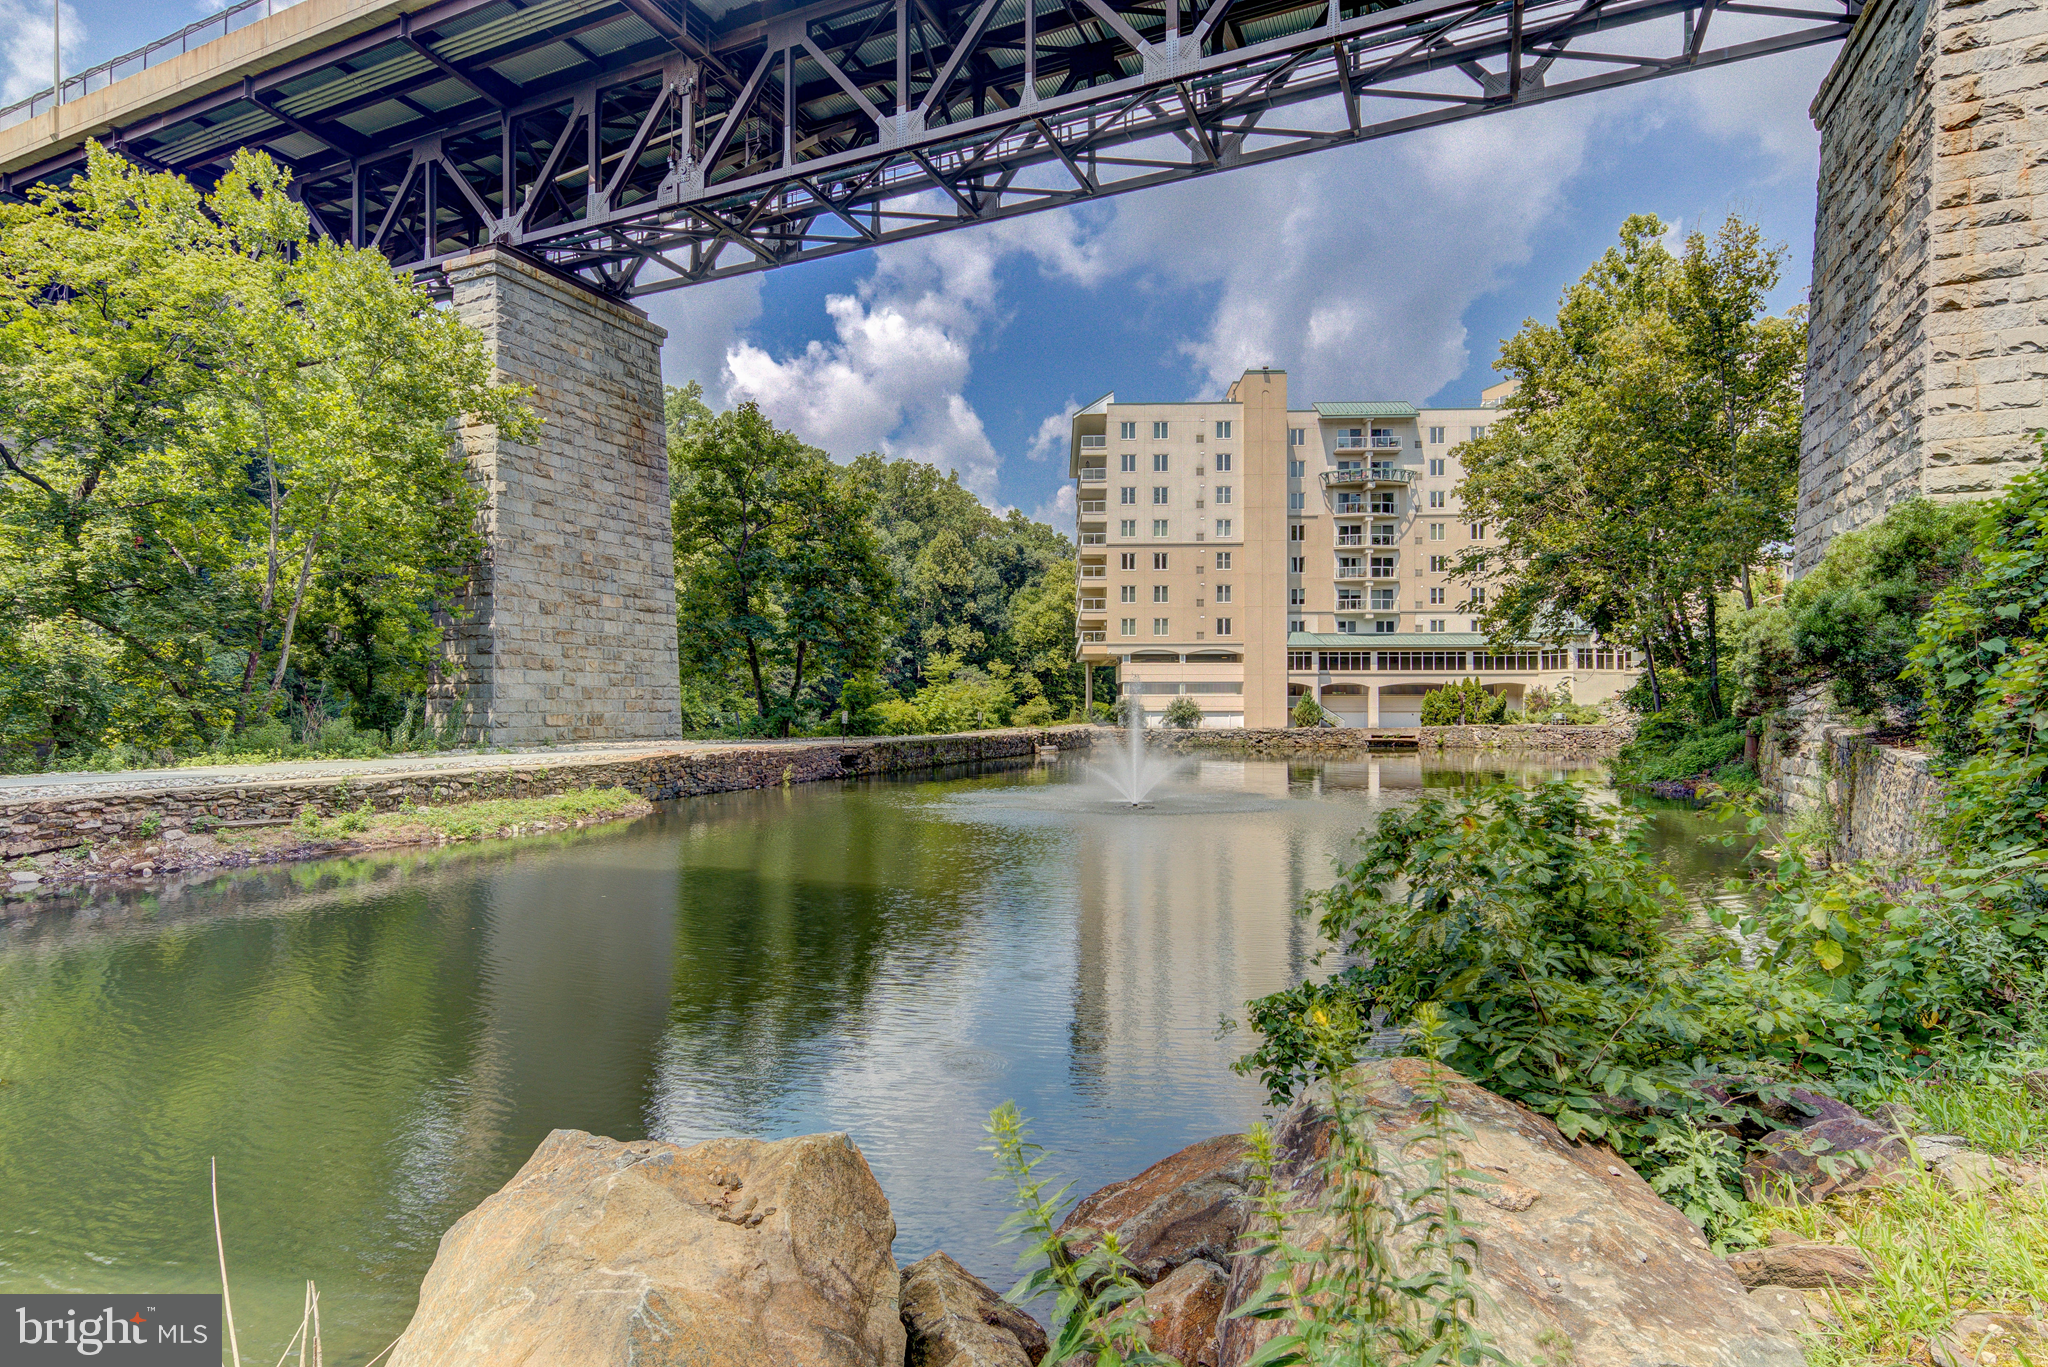 Follow the quiet and private road along the Brandywine River and enter through the security gate to The Pointe. Take the private elevator to your secluded foyer. Immediately notice the large open floorplan. This model apartment features updated fixtures, flooring, kitchen and baths. To the right of the foyer is a storage closet, which has been converted into a craft room with custom cabinets and provides an abundance of space for storage. To the left of the foyer is a guest room with newer carpet. Heading towards the main living space, pass by a full guest bathroom. The main living area boasts open sightlines strait through to the wall of windows overlooking the Brandywine. The contemporary style allows you to be as creative as you want with the design, as there are various layout options. The stunning chef's kitchen features beautiful stainless steel appliances, including a subzero fridge, plenty of cabinet storage, granite counters and large L-shaped island with seating. There is enough space to include a large dining table, sitting area and family room. Tucked down a private hall is an additional guest suite with updated bath and the primary suite with large walk-in closet with shelving system, additional closet and beautifully updated bath with soaking tub, walk-in shower and dual vanity. Enter onto the sprawling balcony through 2 sliding doors and instantly indulge in the serene views of the Brandywine River and wooded area beyond. Additional amenities include a huge community room, game room, exercise room, personal storage next to your 2 reserved car spots, pool, plus wonderful walking paths just outside your door. All of this while being just steps from Trolley Square, Downtown Wilmington and all that the area has to offer.